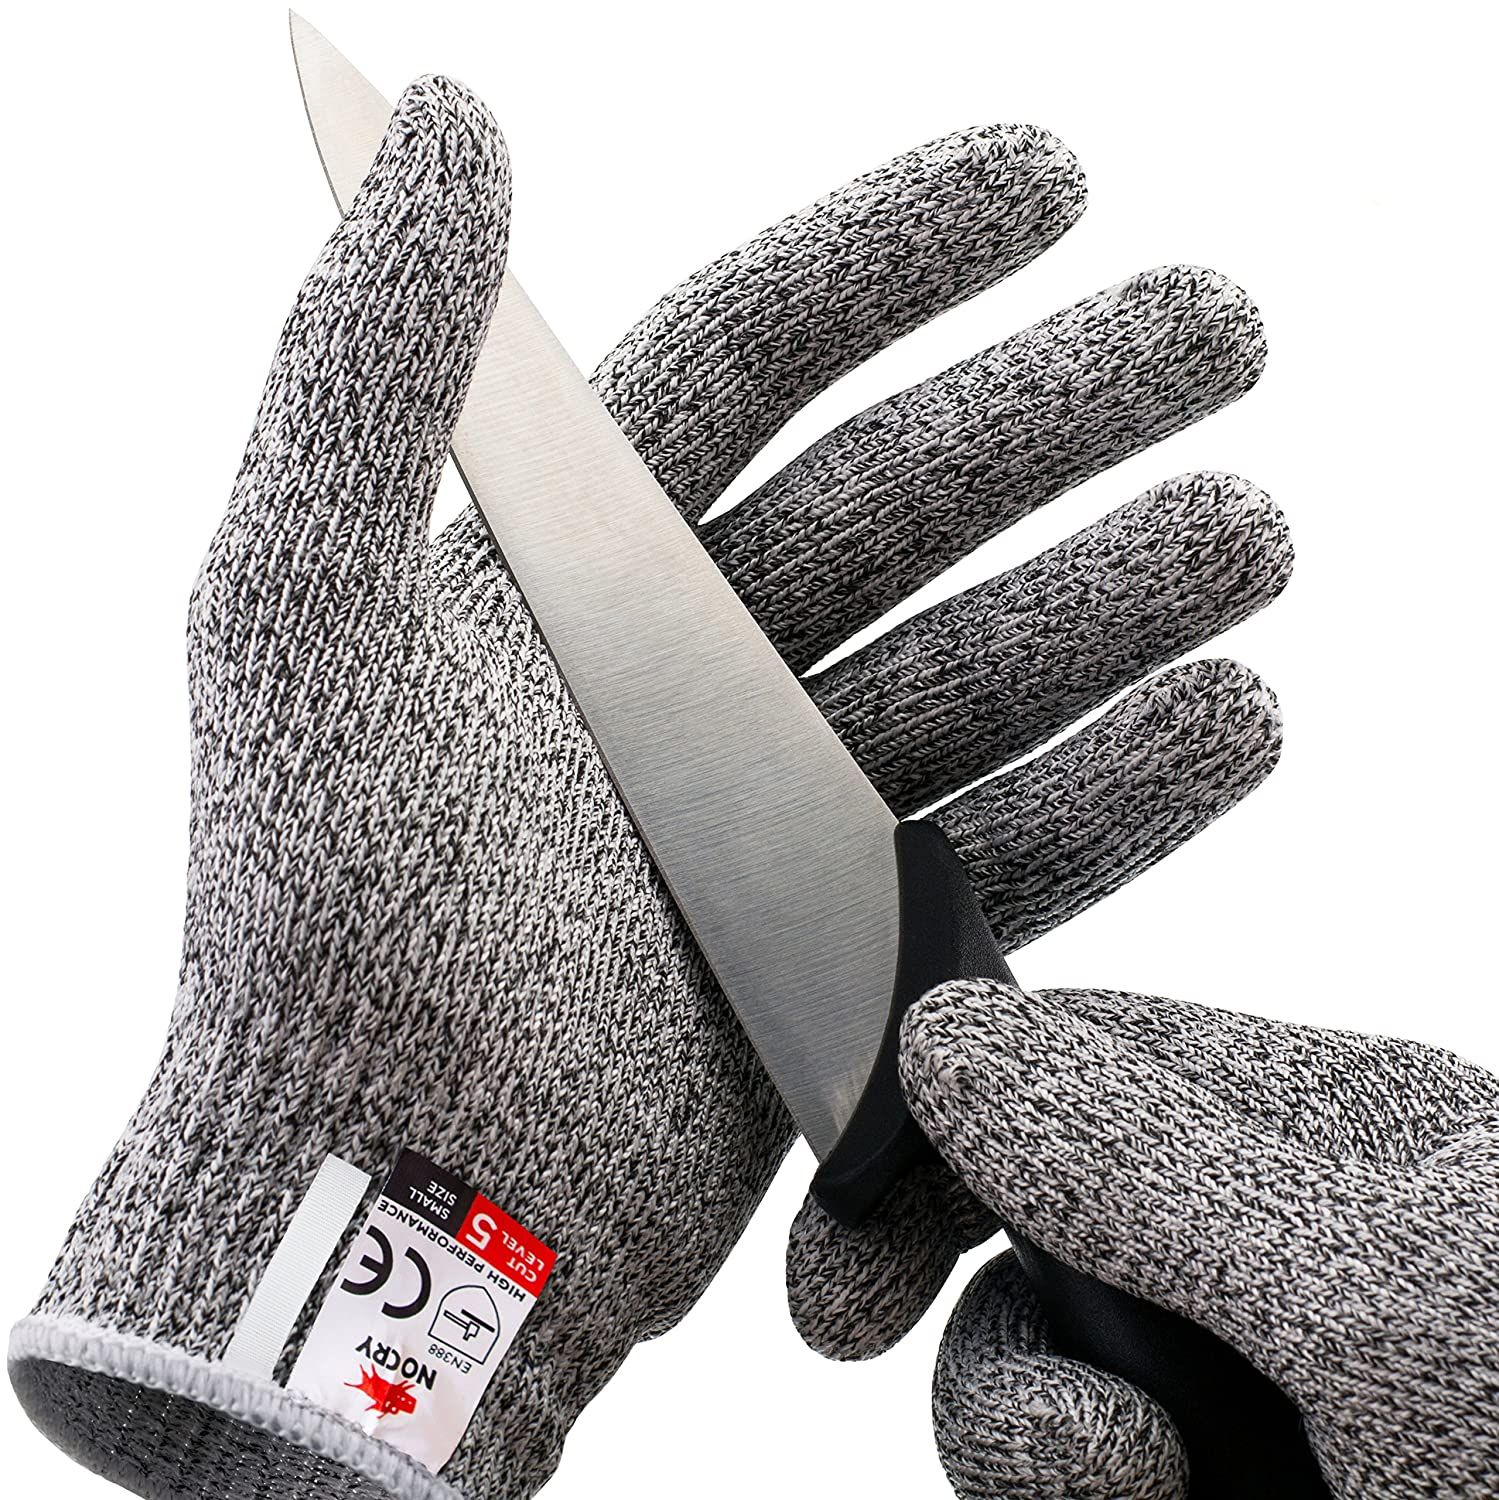 NoCry Cut Resistant Gloves - High Performance Level 5 Protection, Food Grade. Size Large